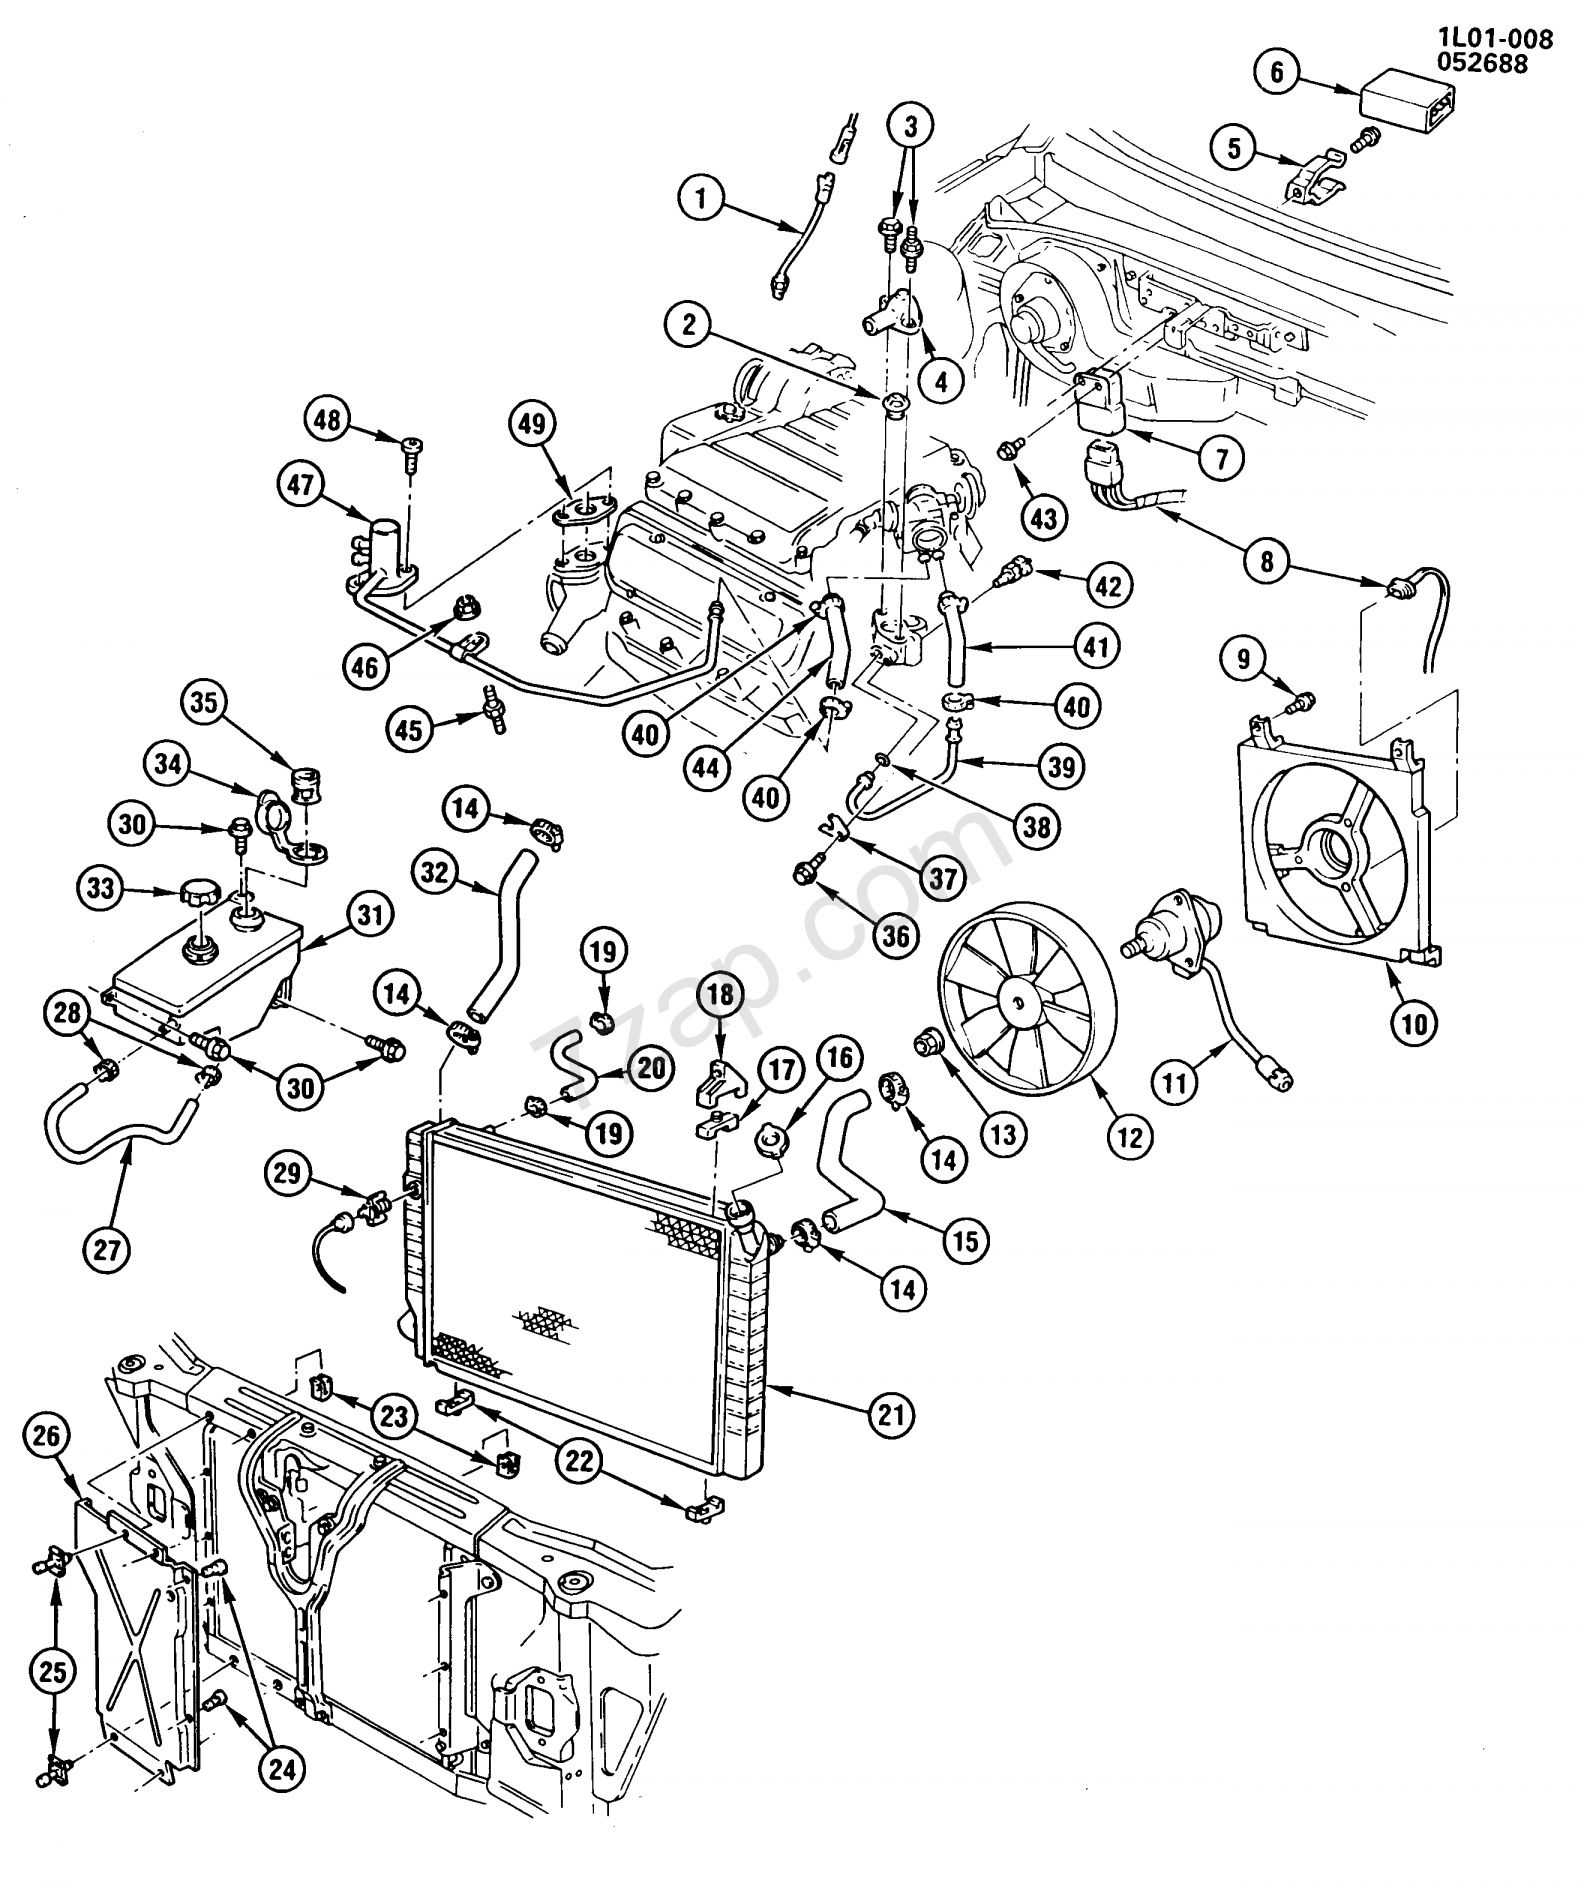 Chevy 305 Engine Wiring Diagram And Chevy L V Engine